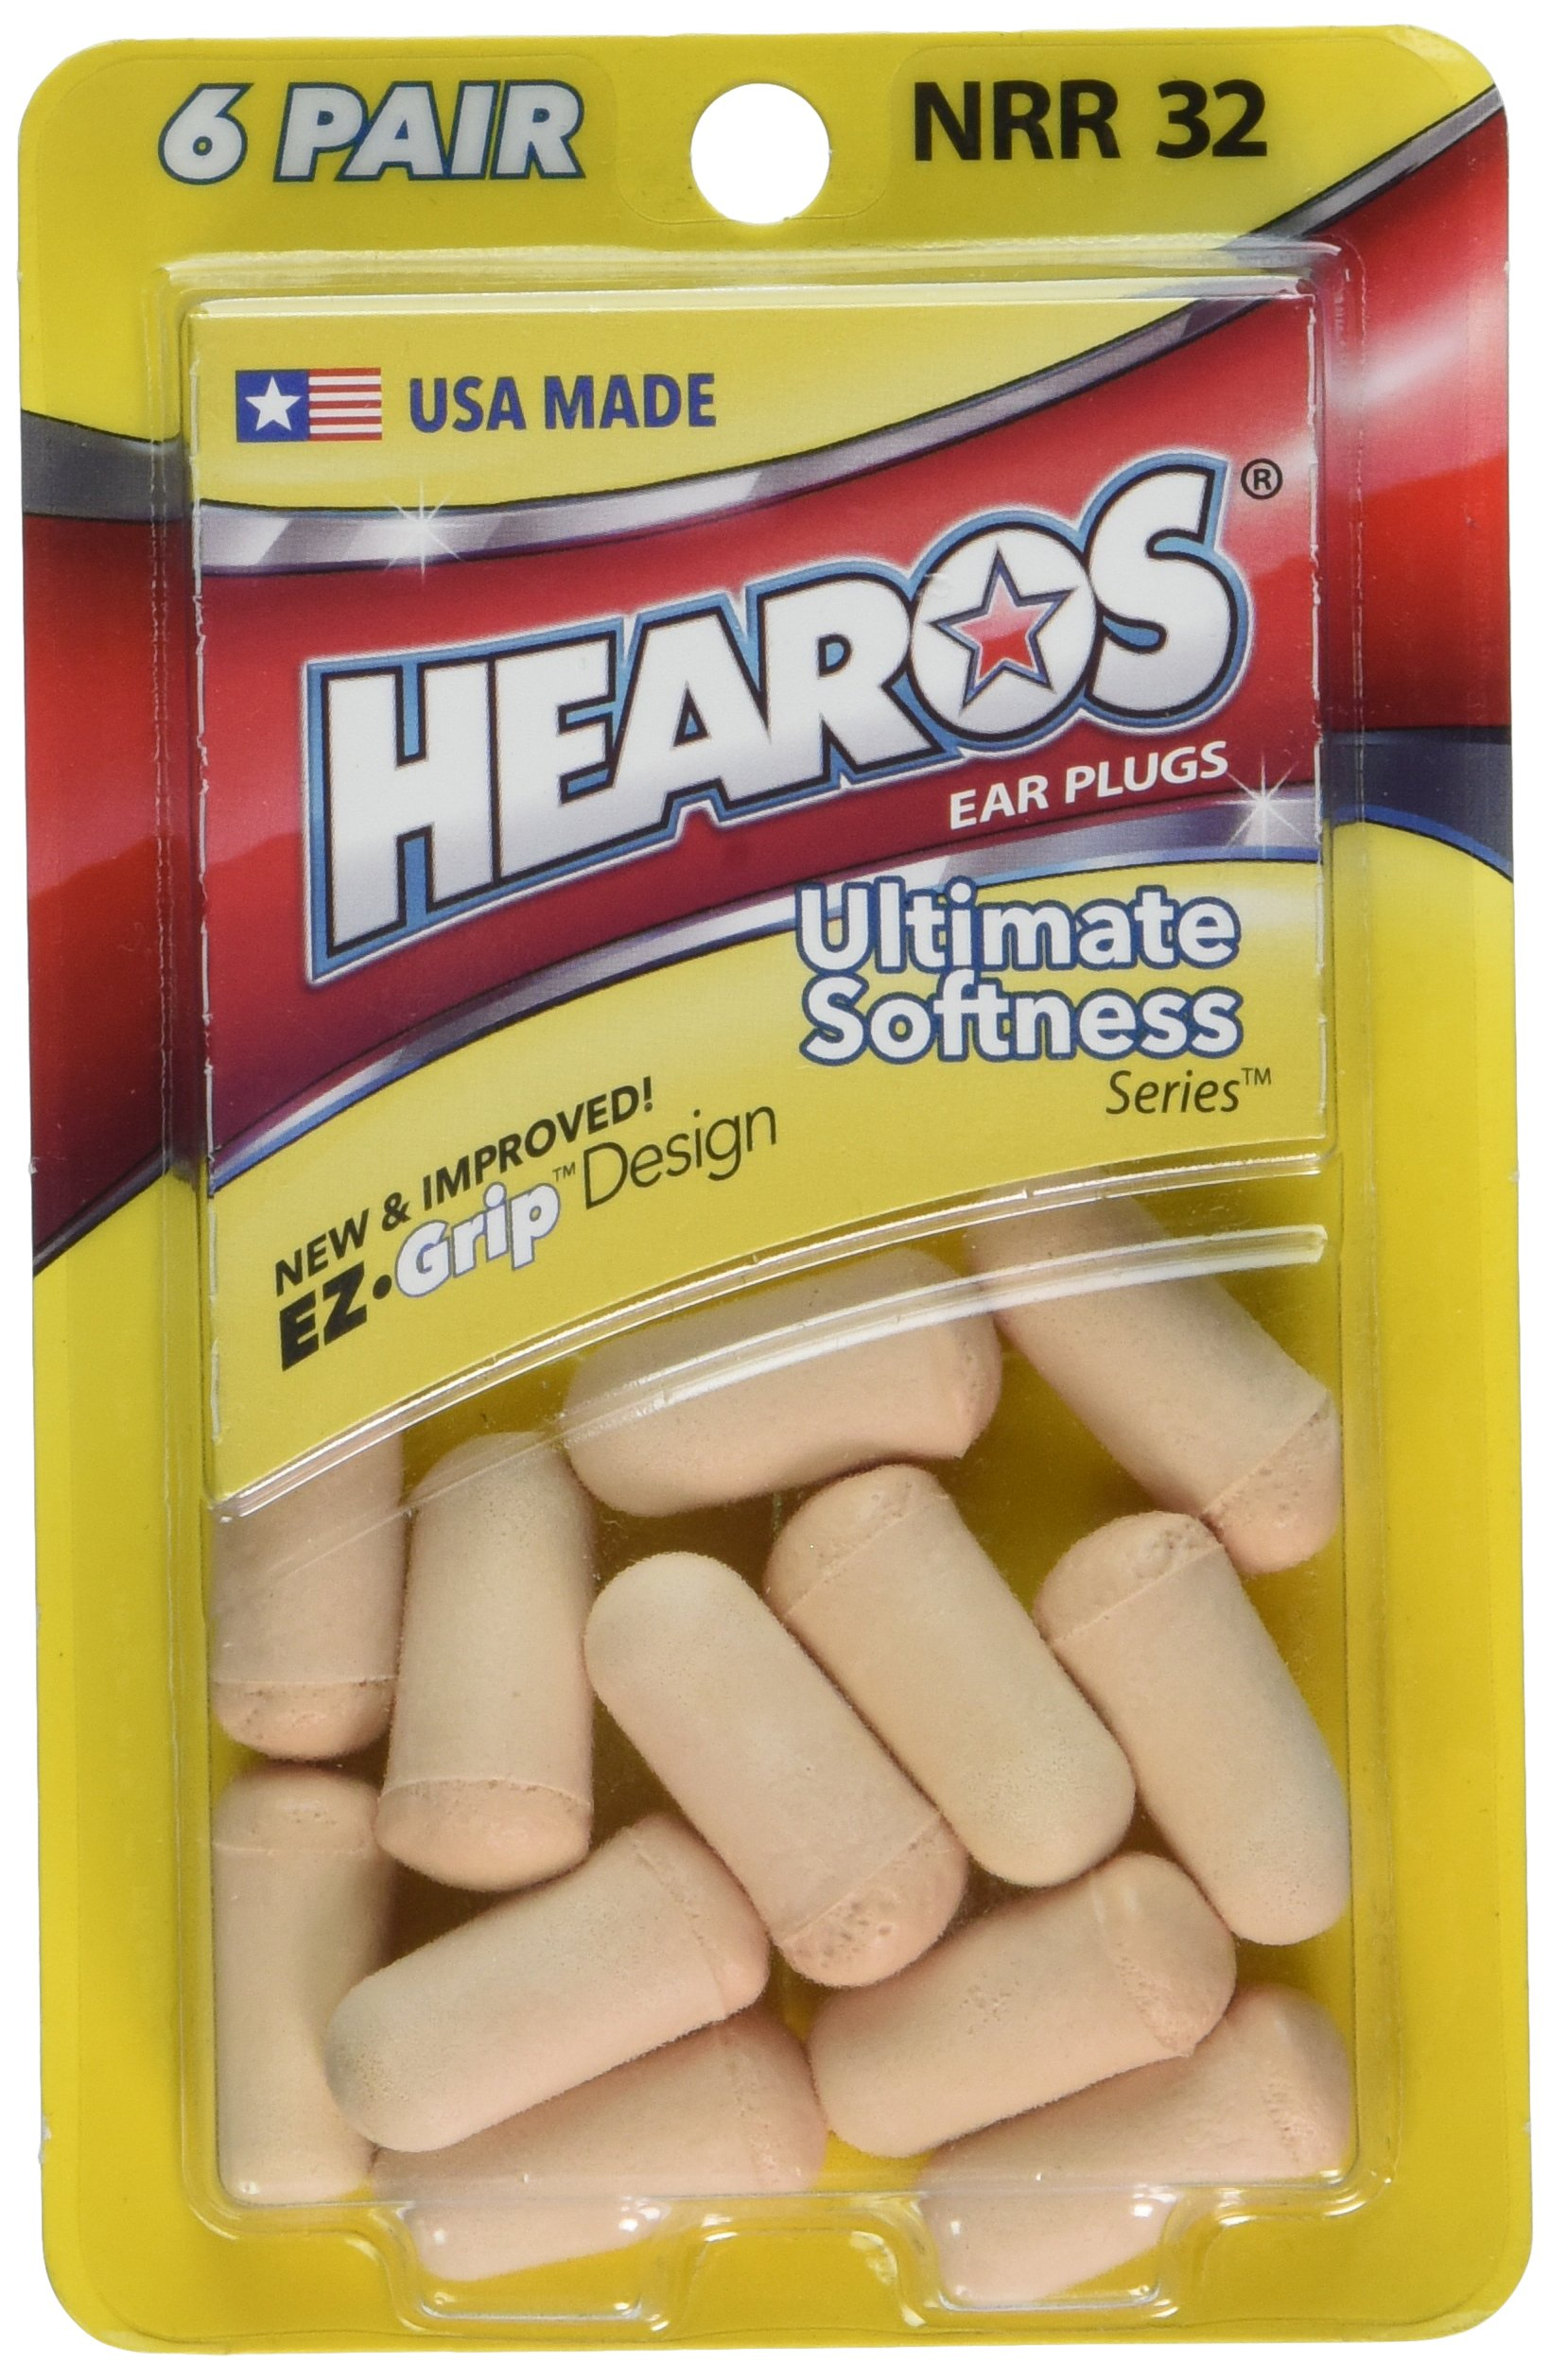 Hearos Ear Plugs Ultimate Softness Series, 6 Count